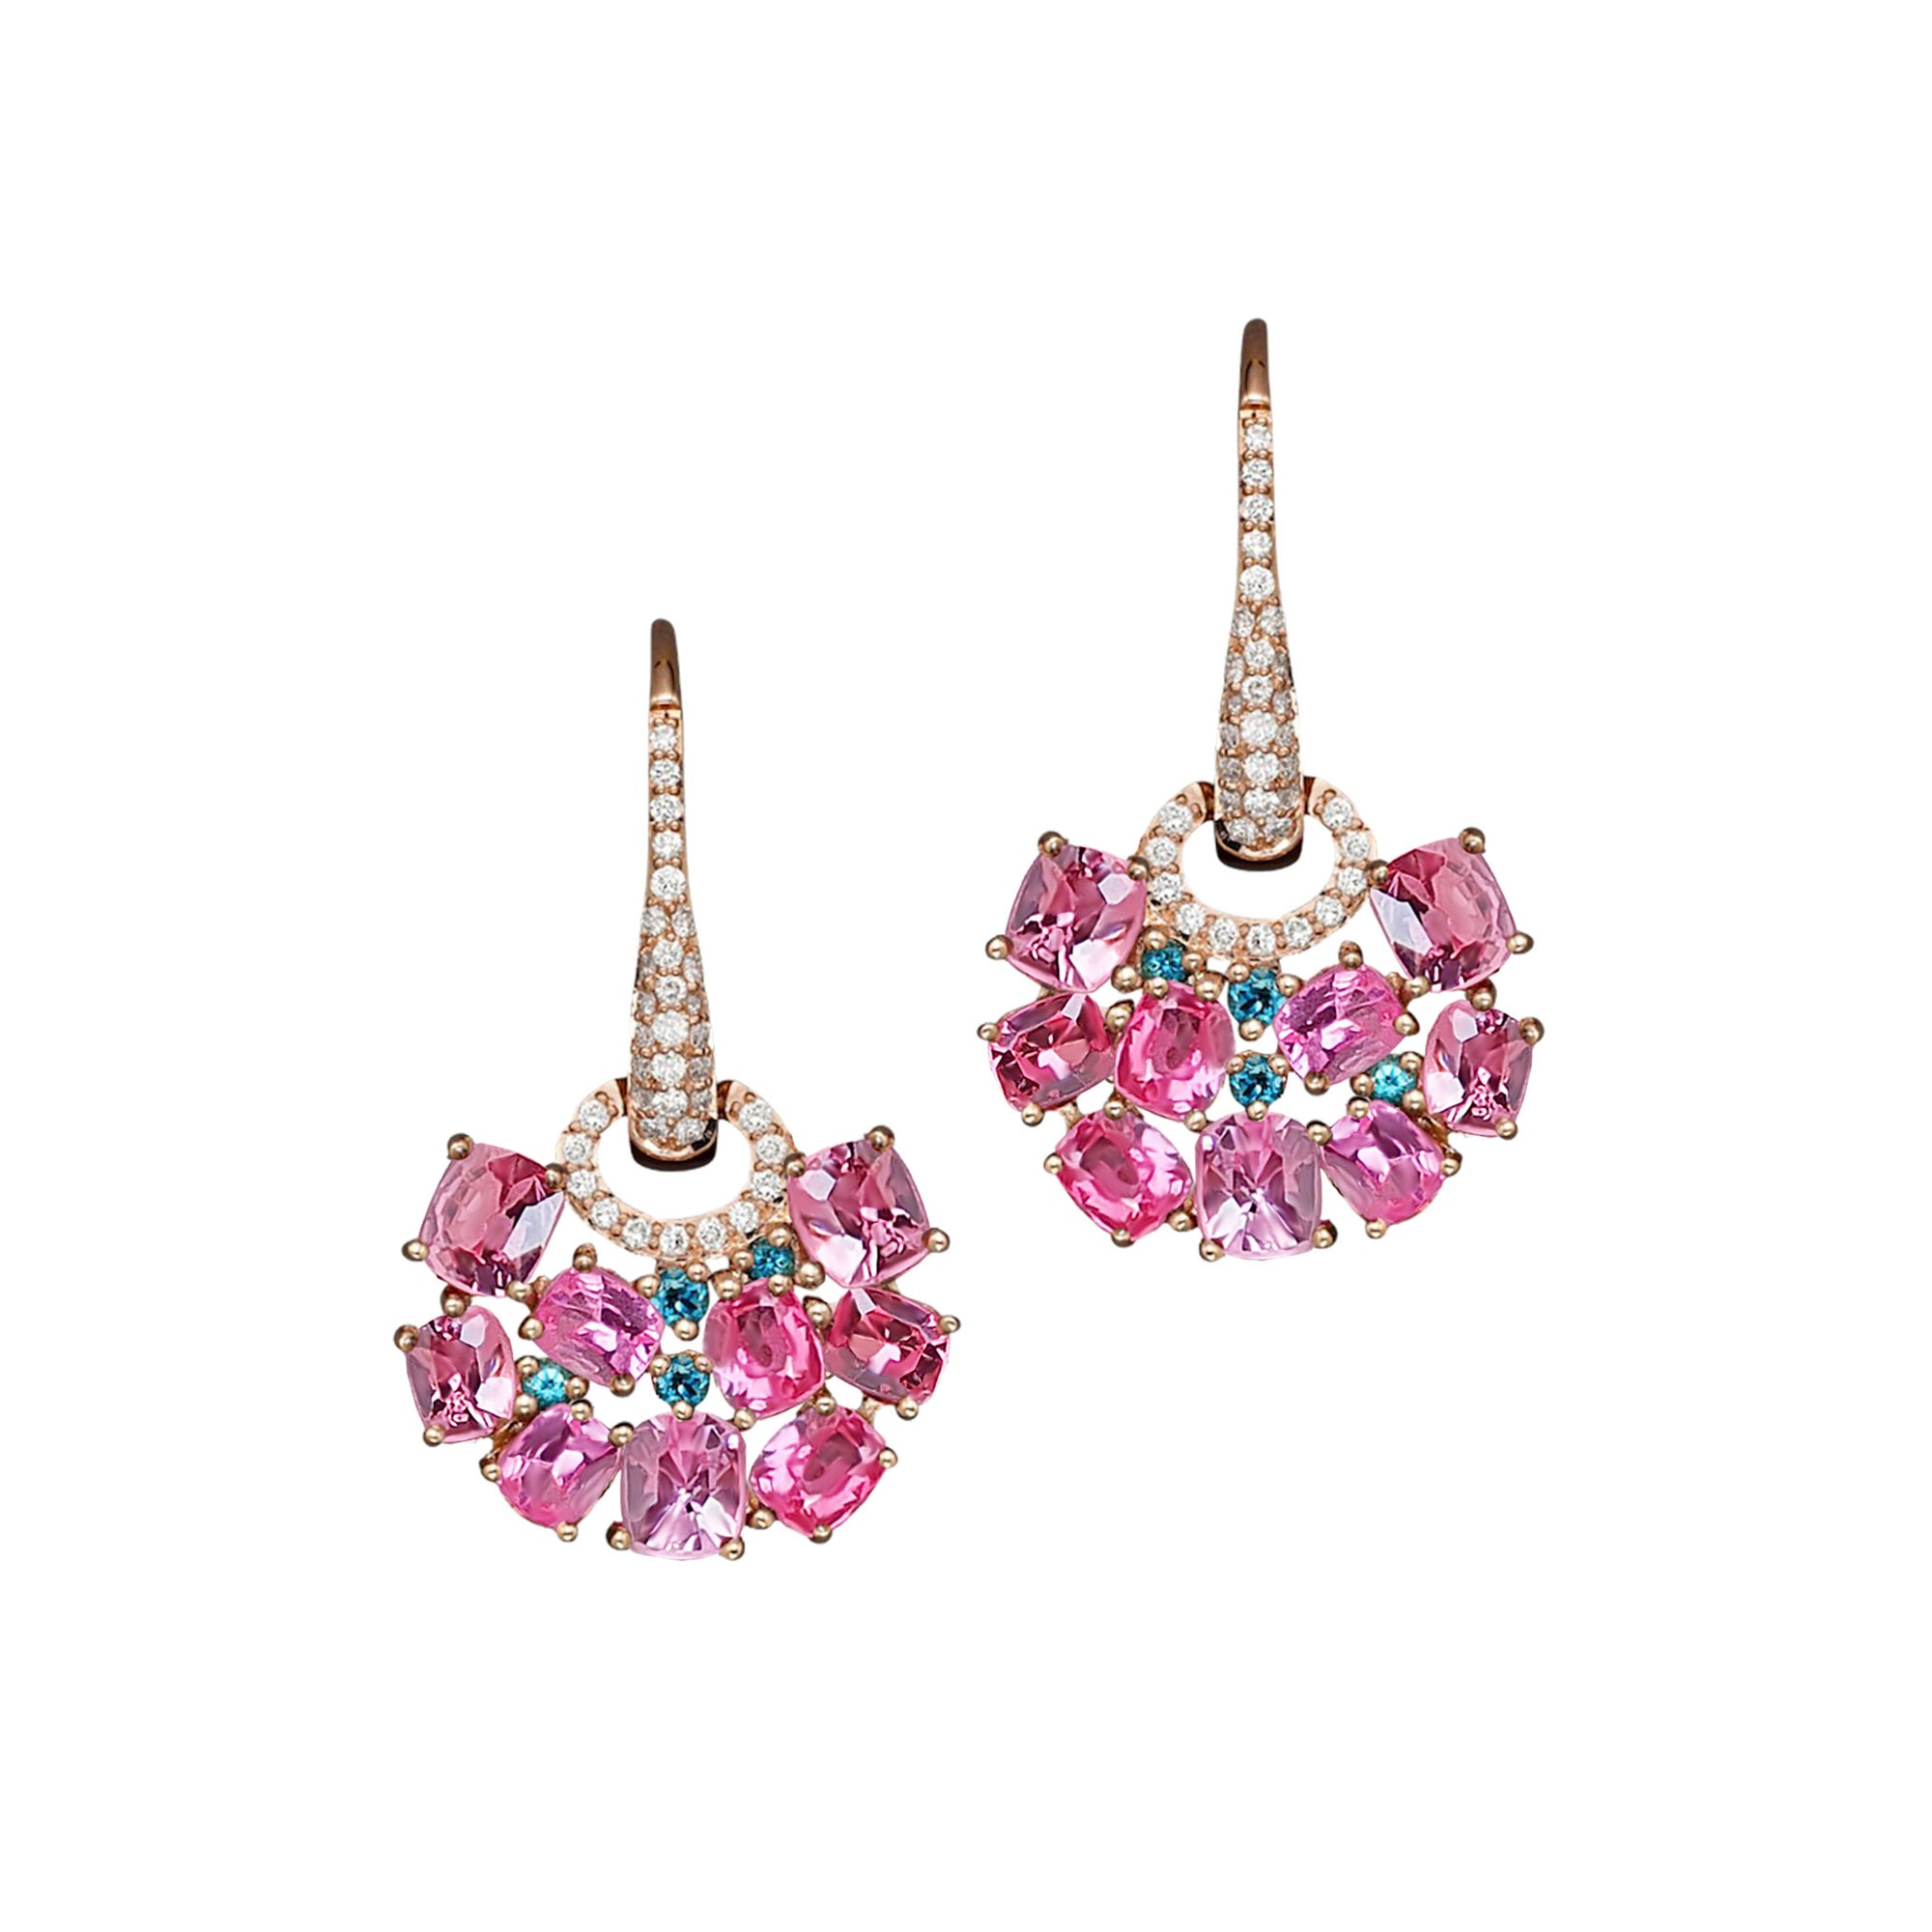 Tully Cluster Dangling Earrings - Pink Cushion W146